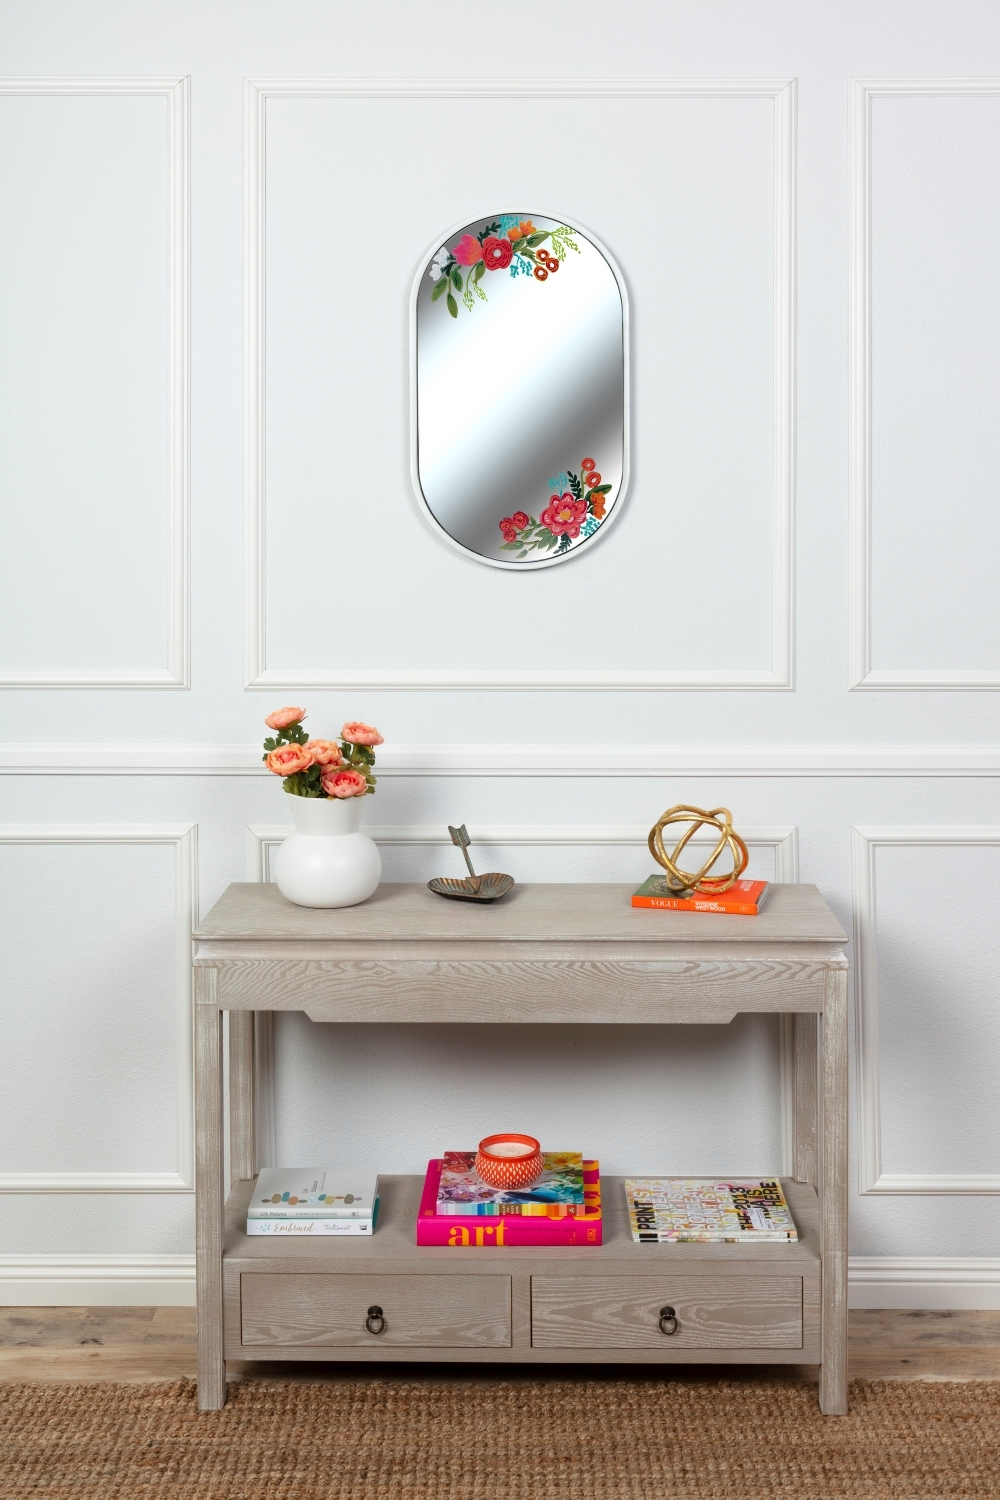 COLORSHOT Floral Mirror DIY